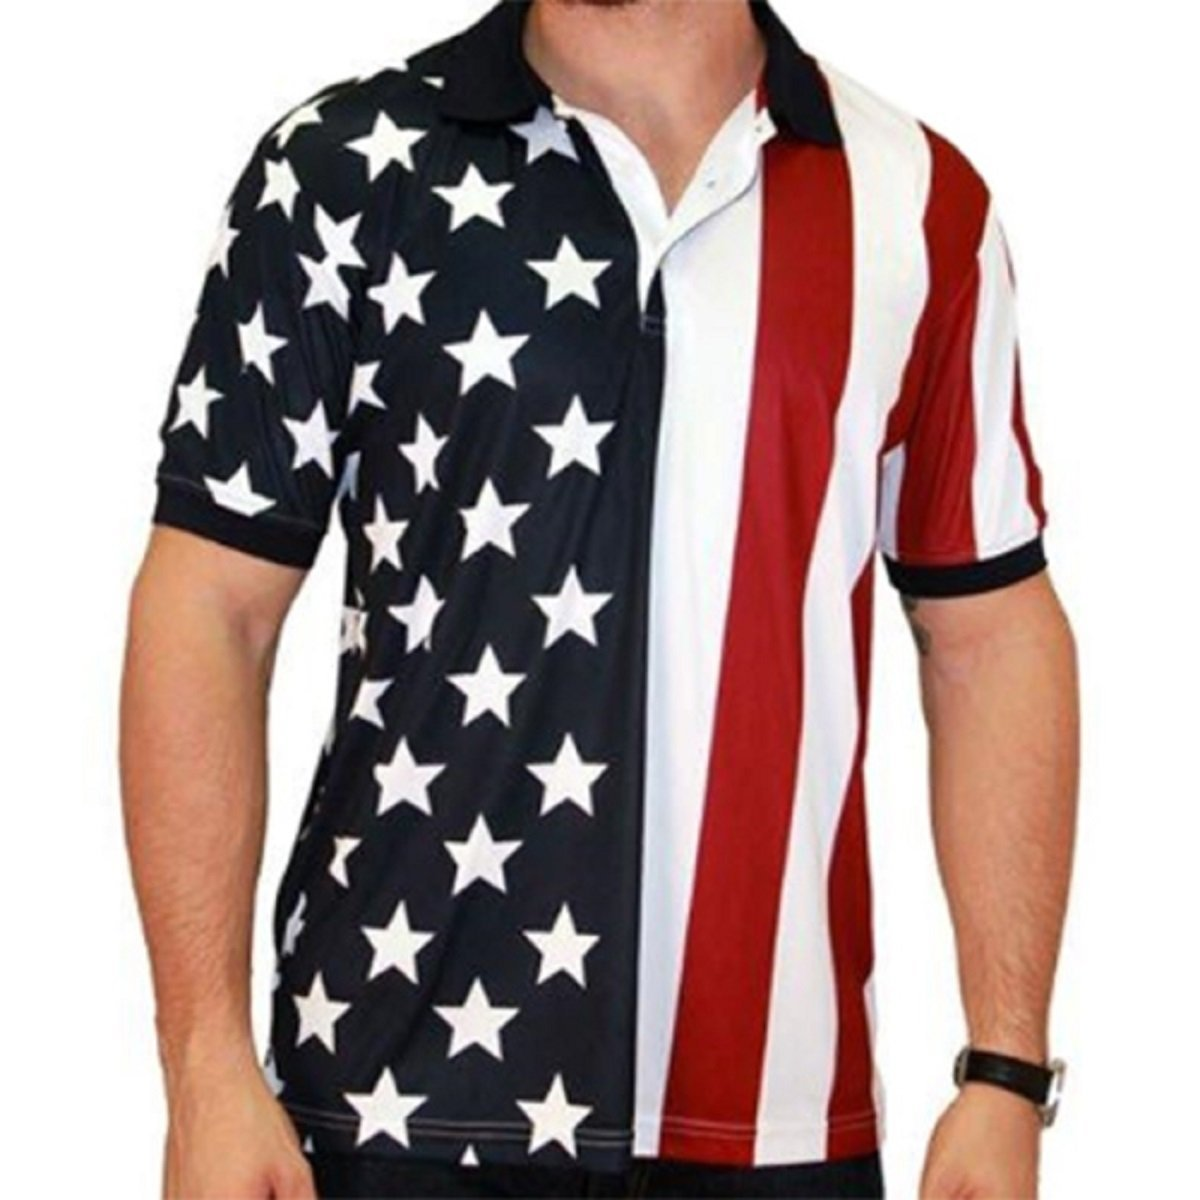 Men's Stars & Stripes Polo T-Shirt (Medium, RWB)